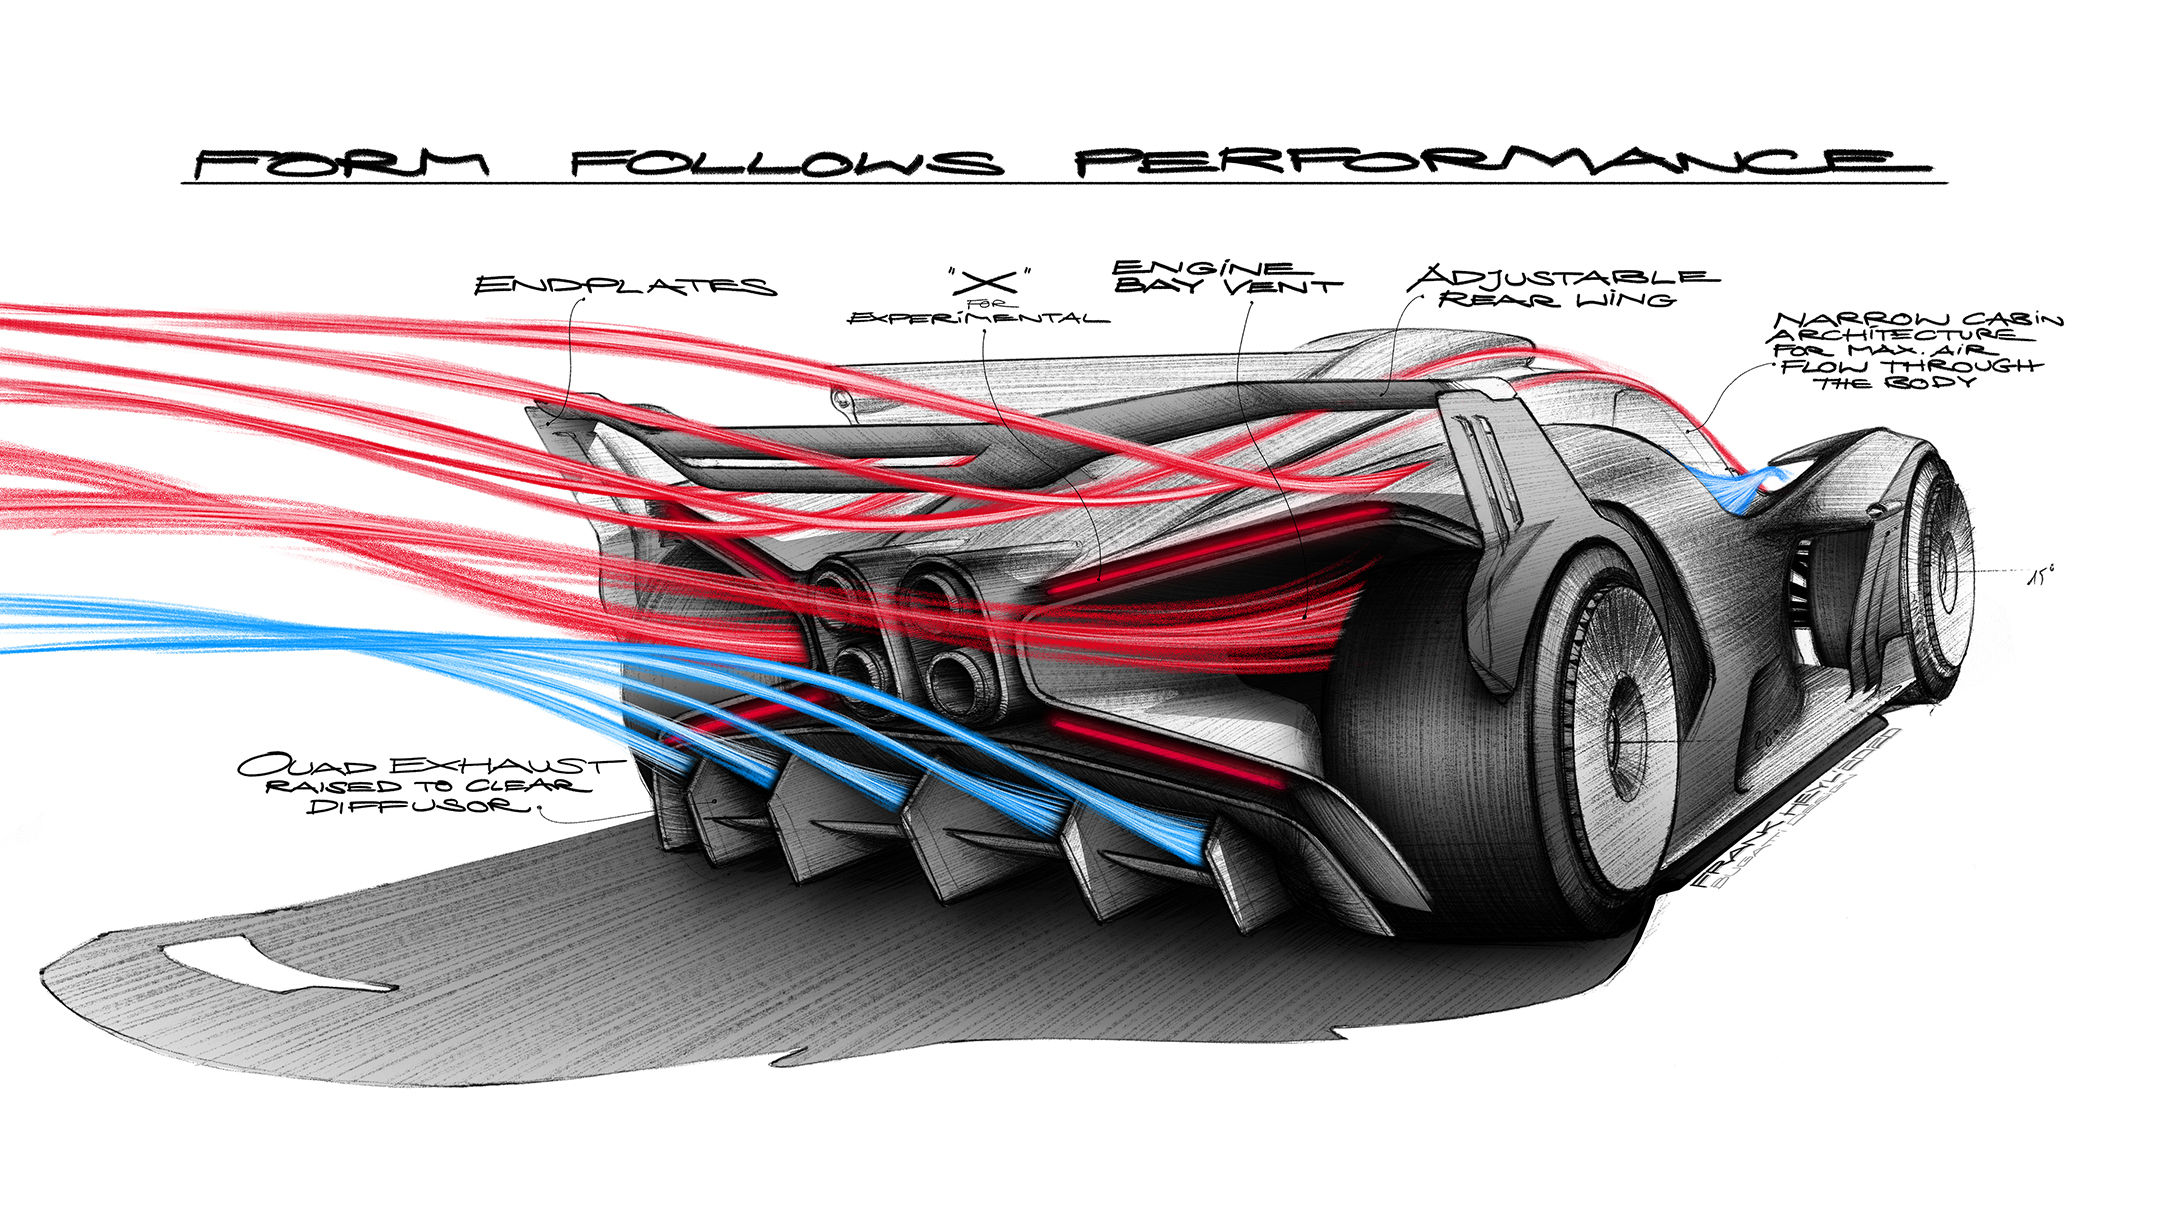 Bugatti Bolide - 2020 - sketch - rear / arrière - form follows performance